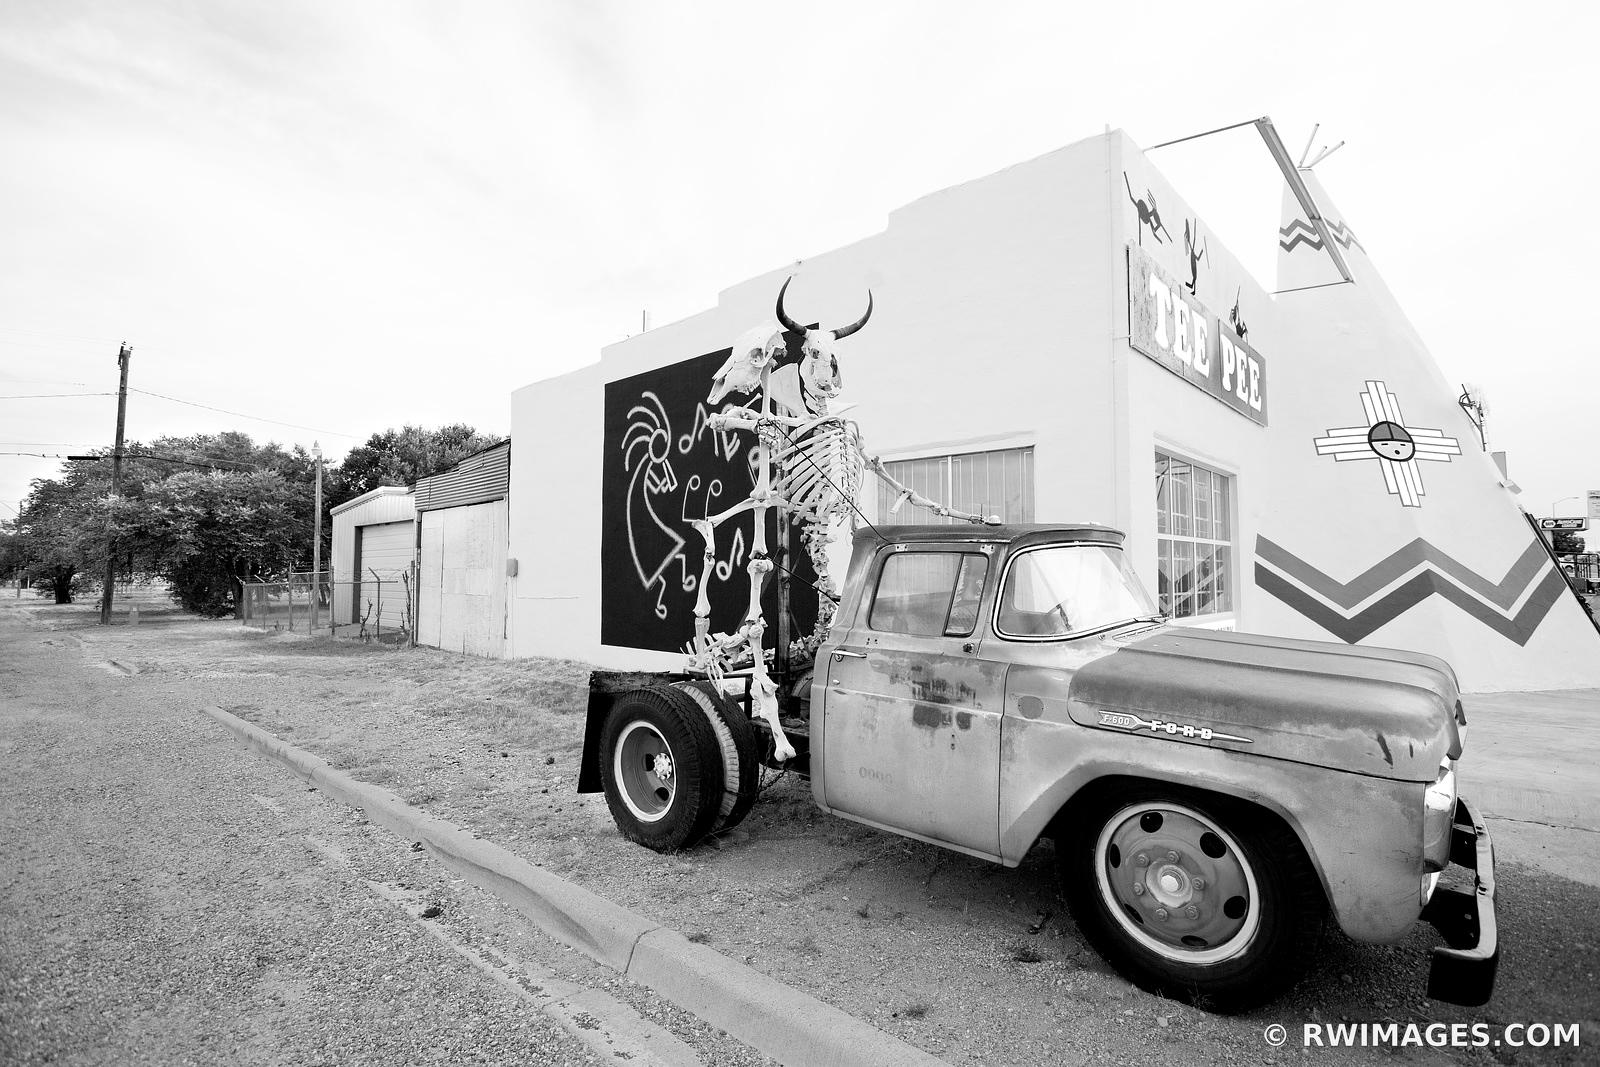 OLD CAR TUCUMCARI NEW MEXICO ROUTE 66 BLACK AND WHITE